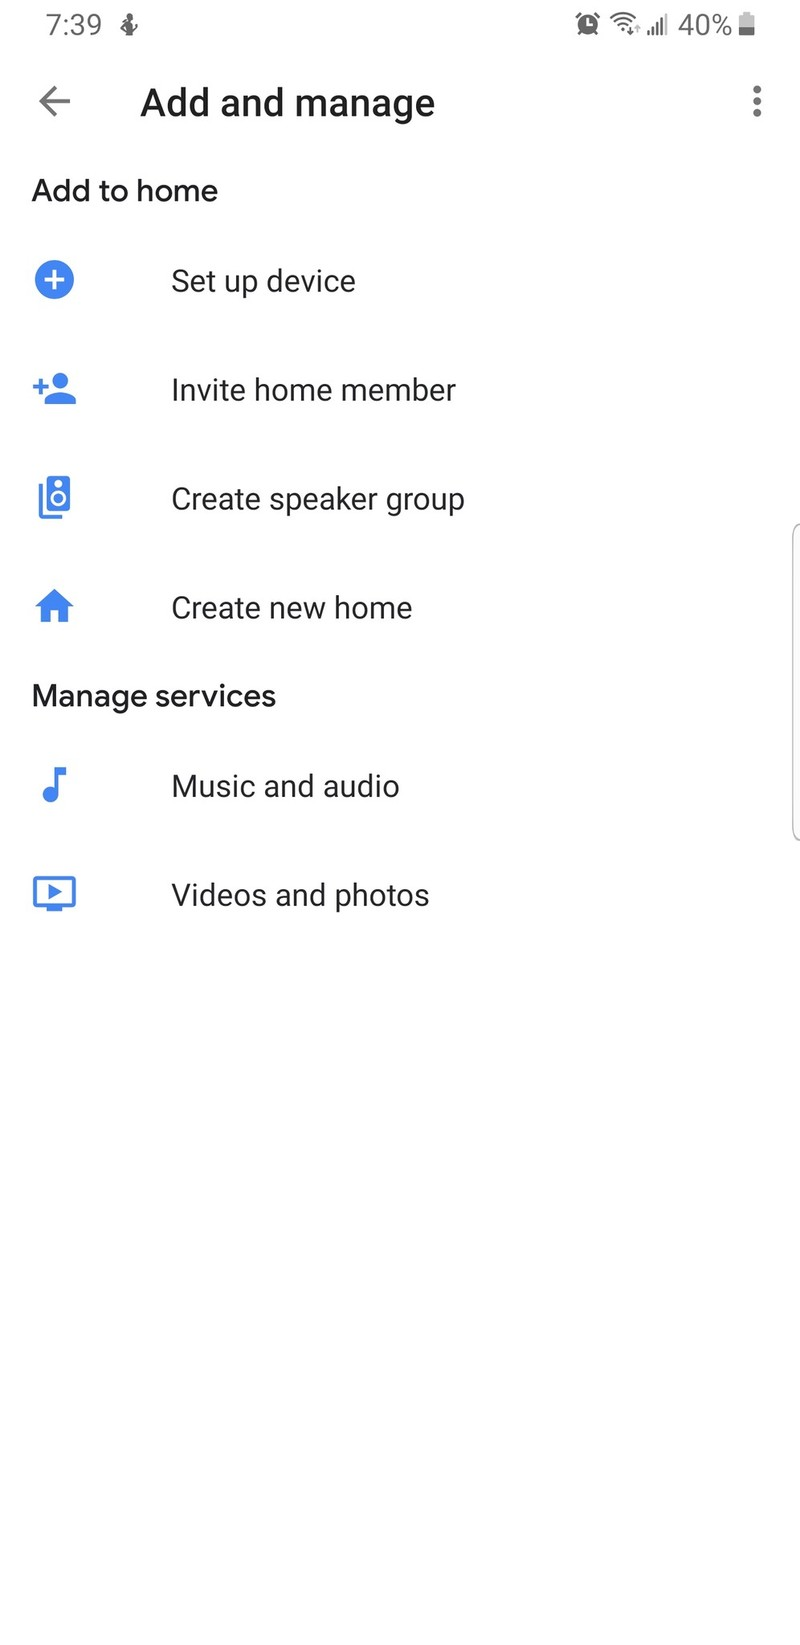 chromecast-hotel-wifi-screenshots%20_2_.